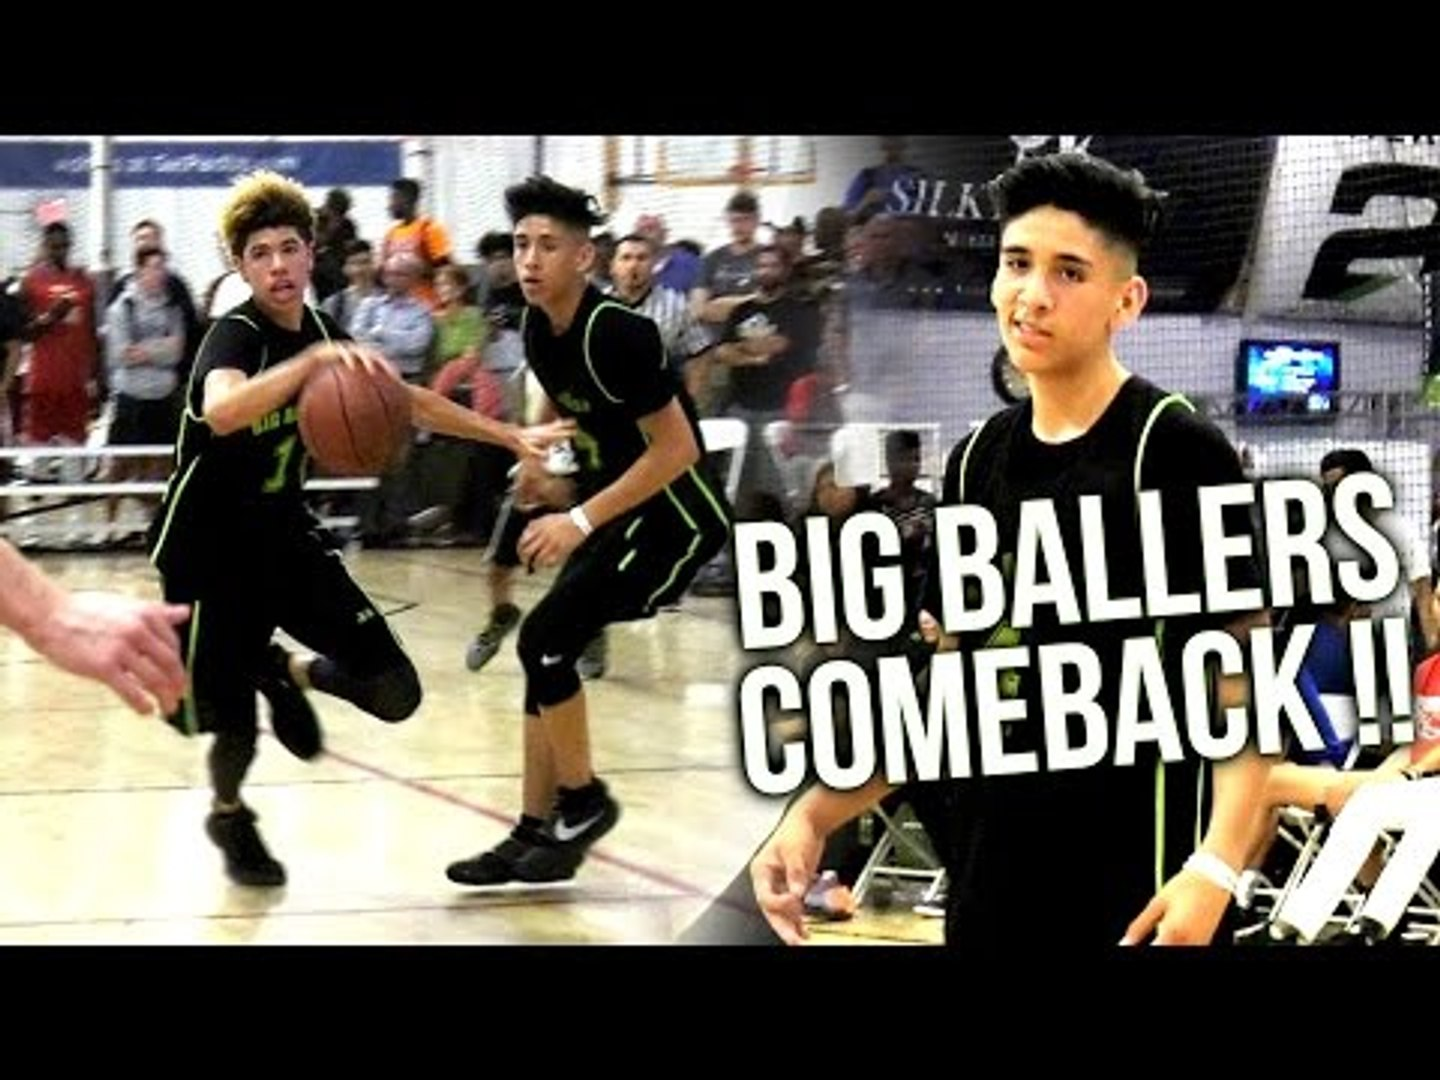 LaMelo Lets Teammates BALL OUT! #4 Will Pluma ON FIRE! Big Ballers 20 Point COMEBACK AAU WIN!